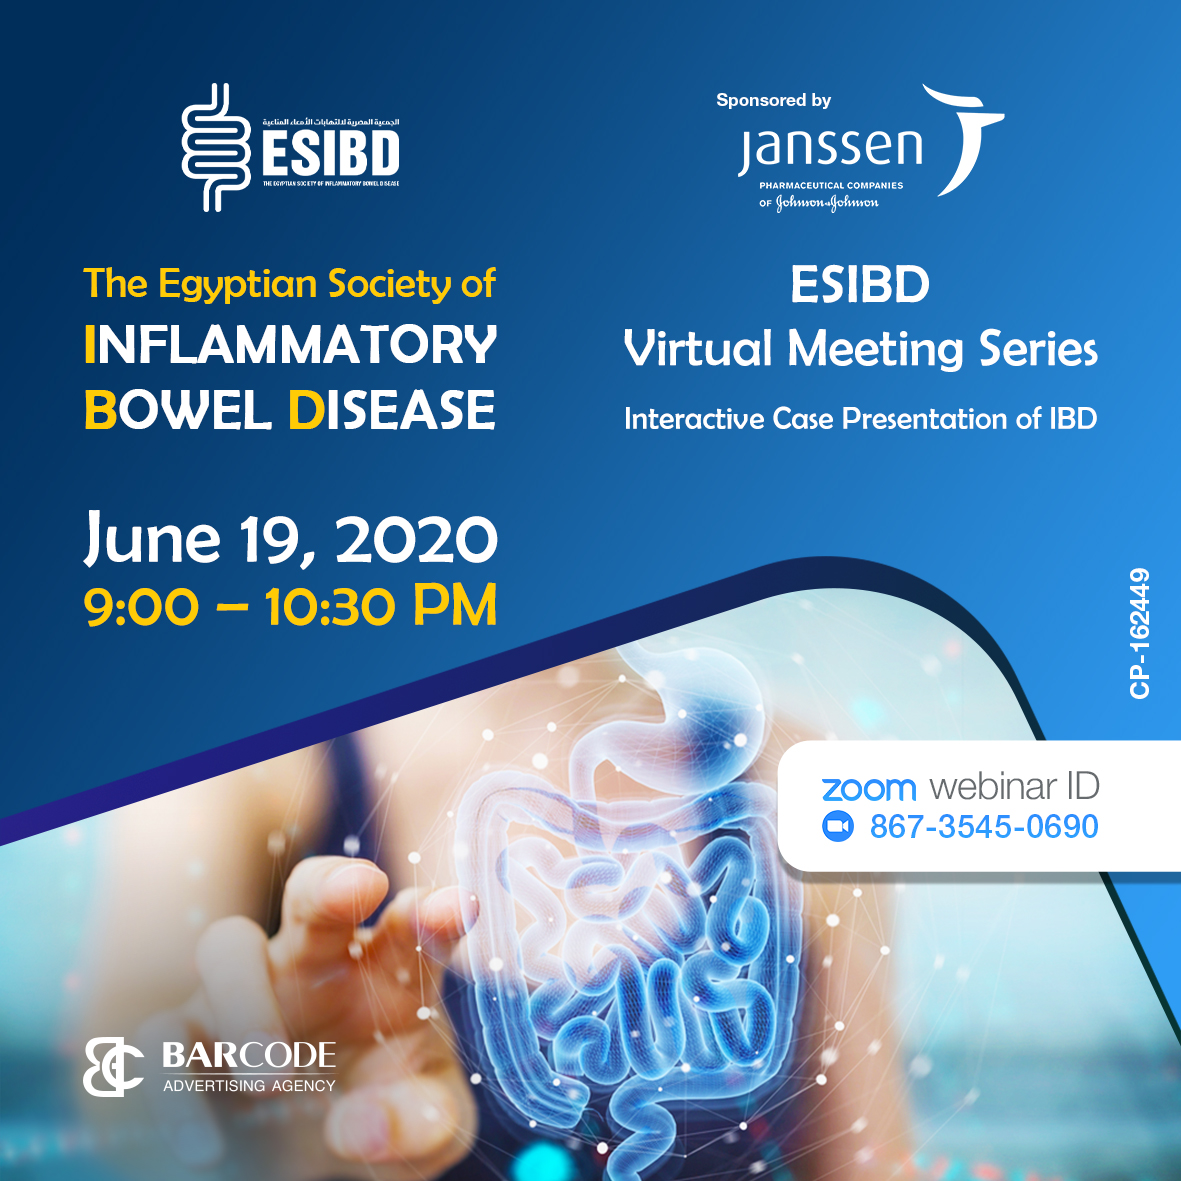 ESIBD Virtual meeting series